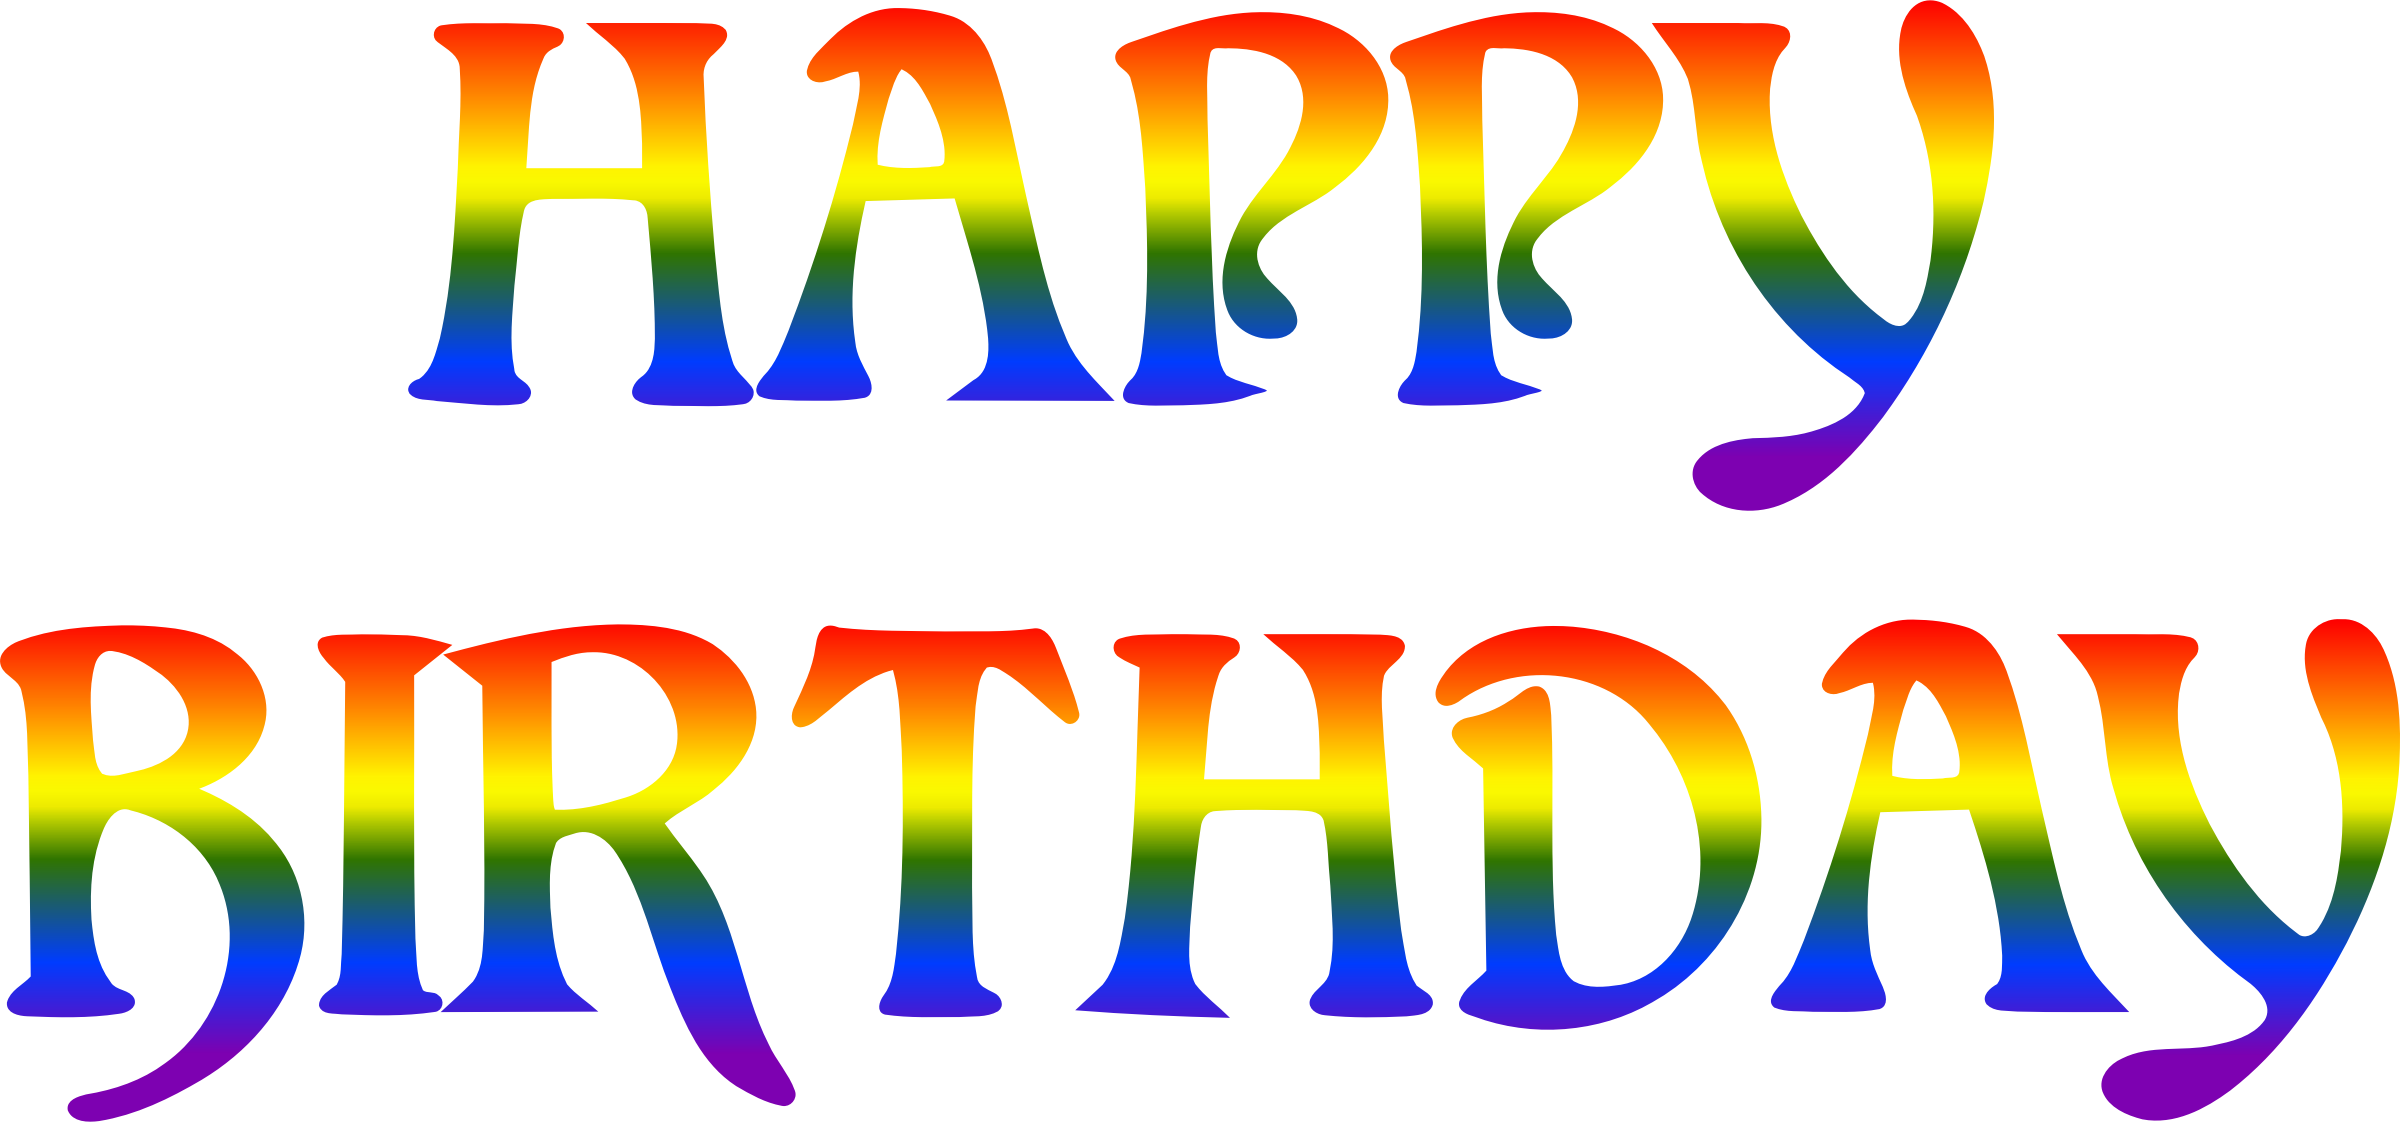 Happy birthday rainbow typography by Firkin